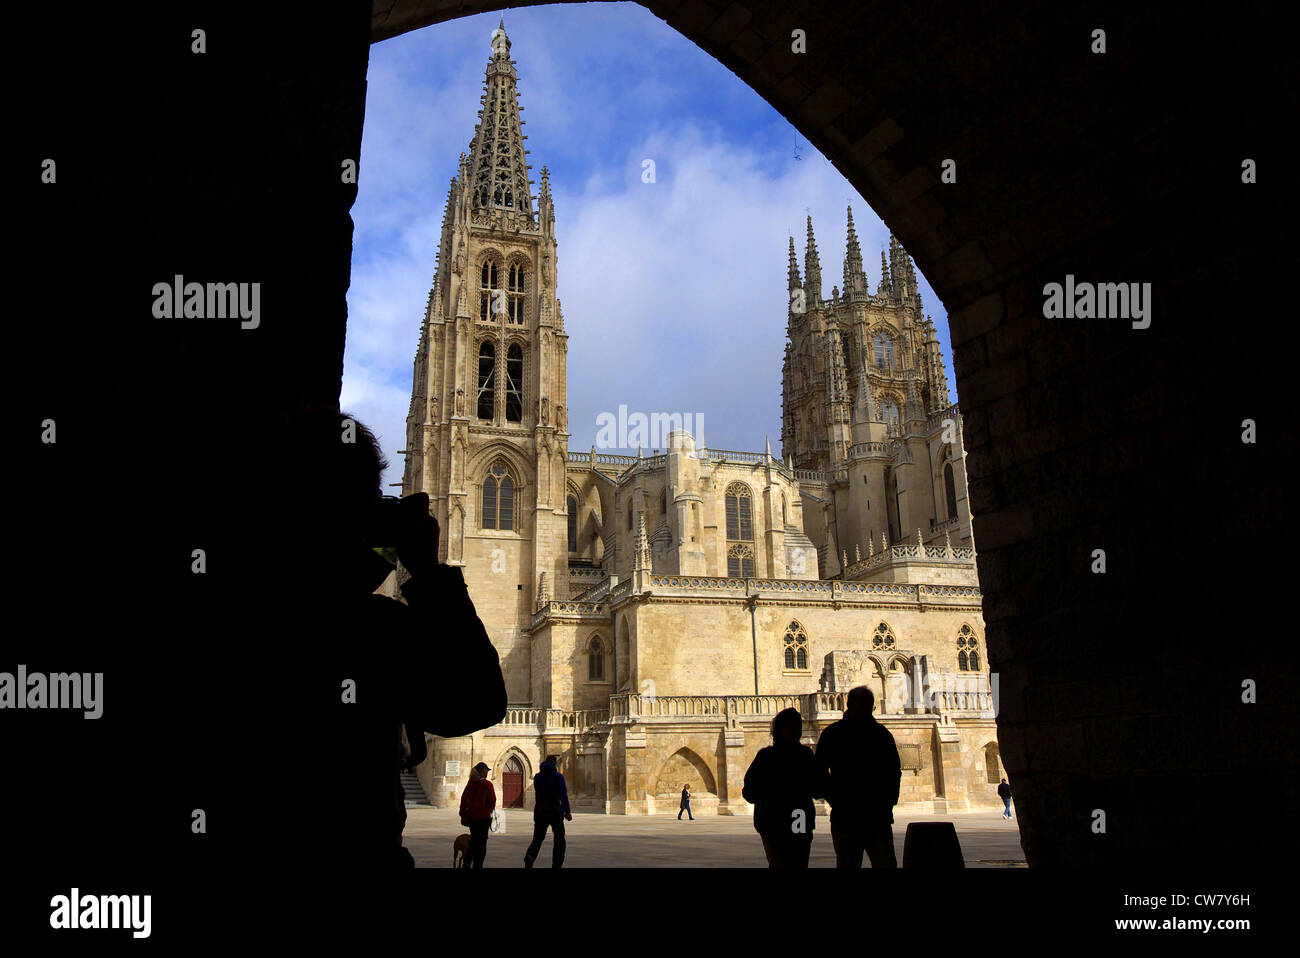 The Cathedral of Santa Maria in Burgos, Spain, taken from under the arch of Santa Maria. Stock Photo